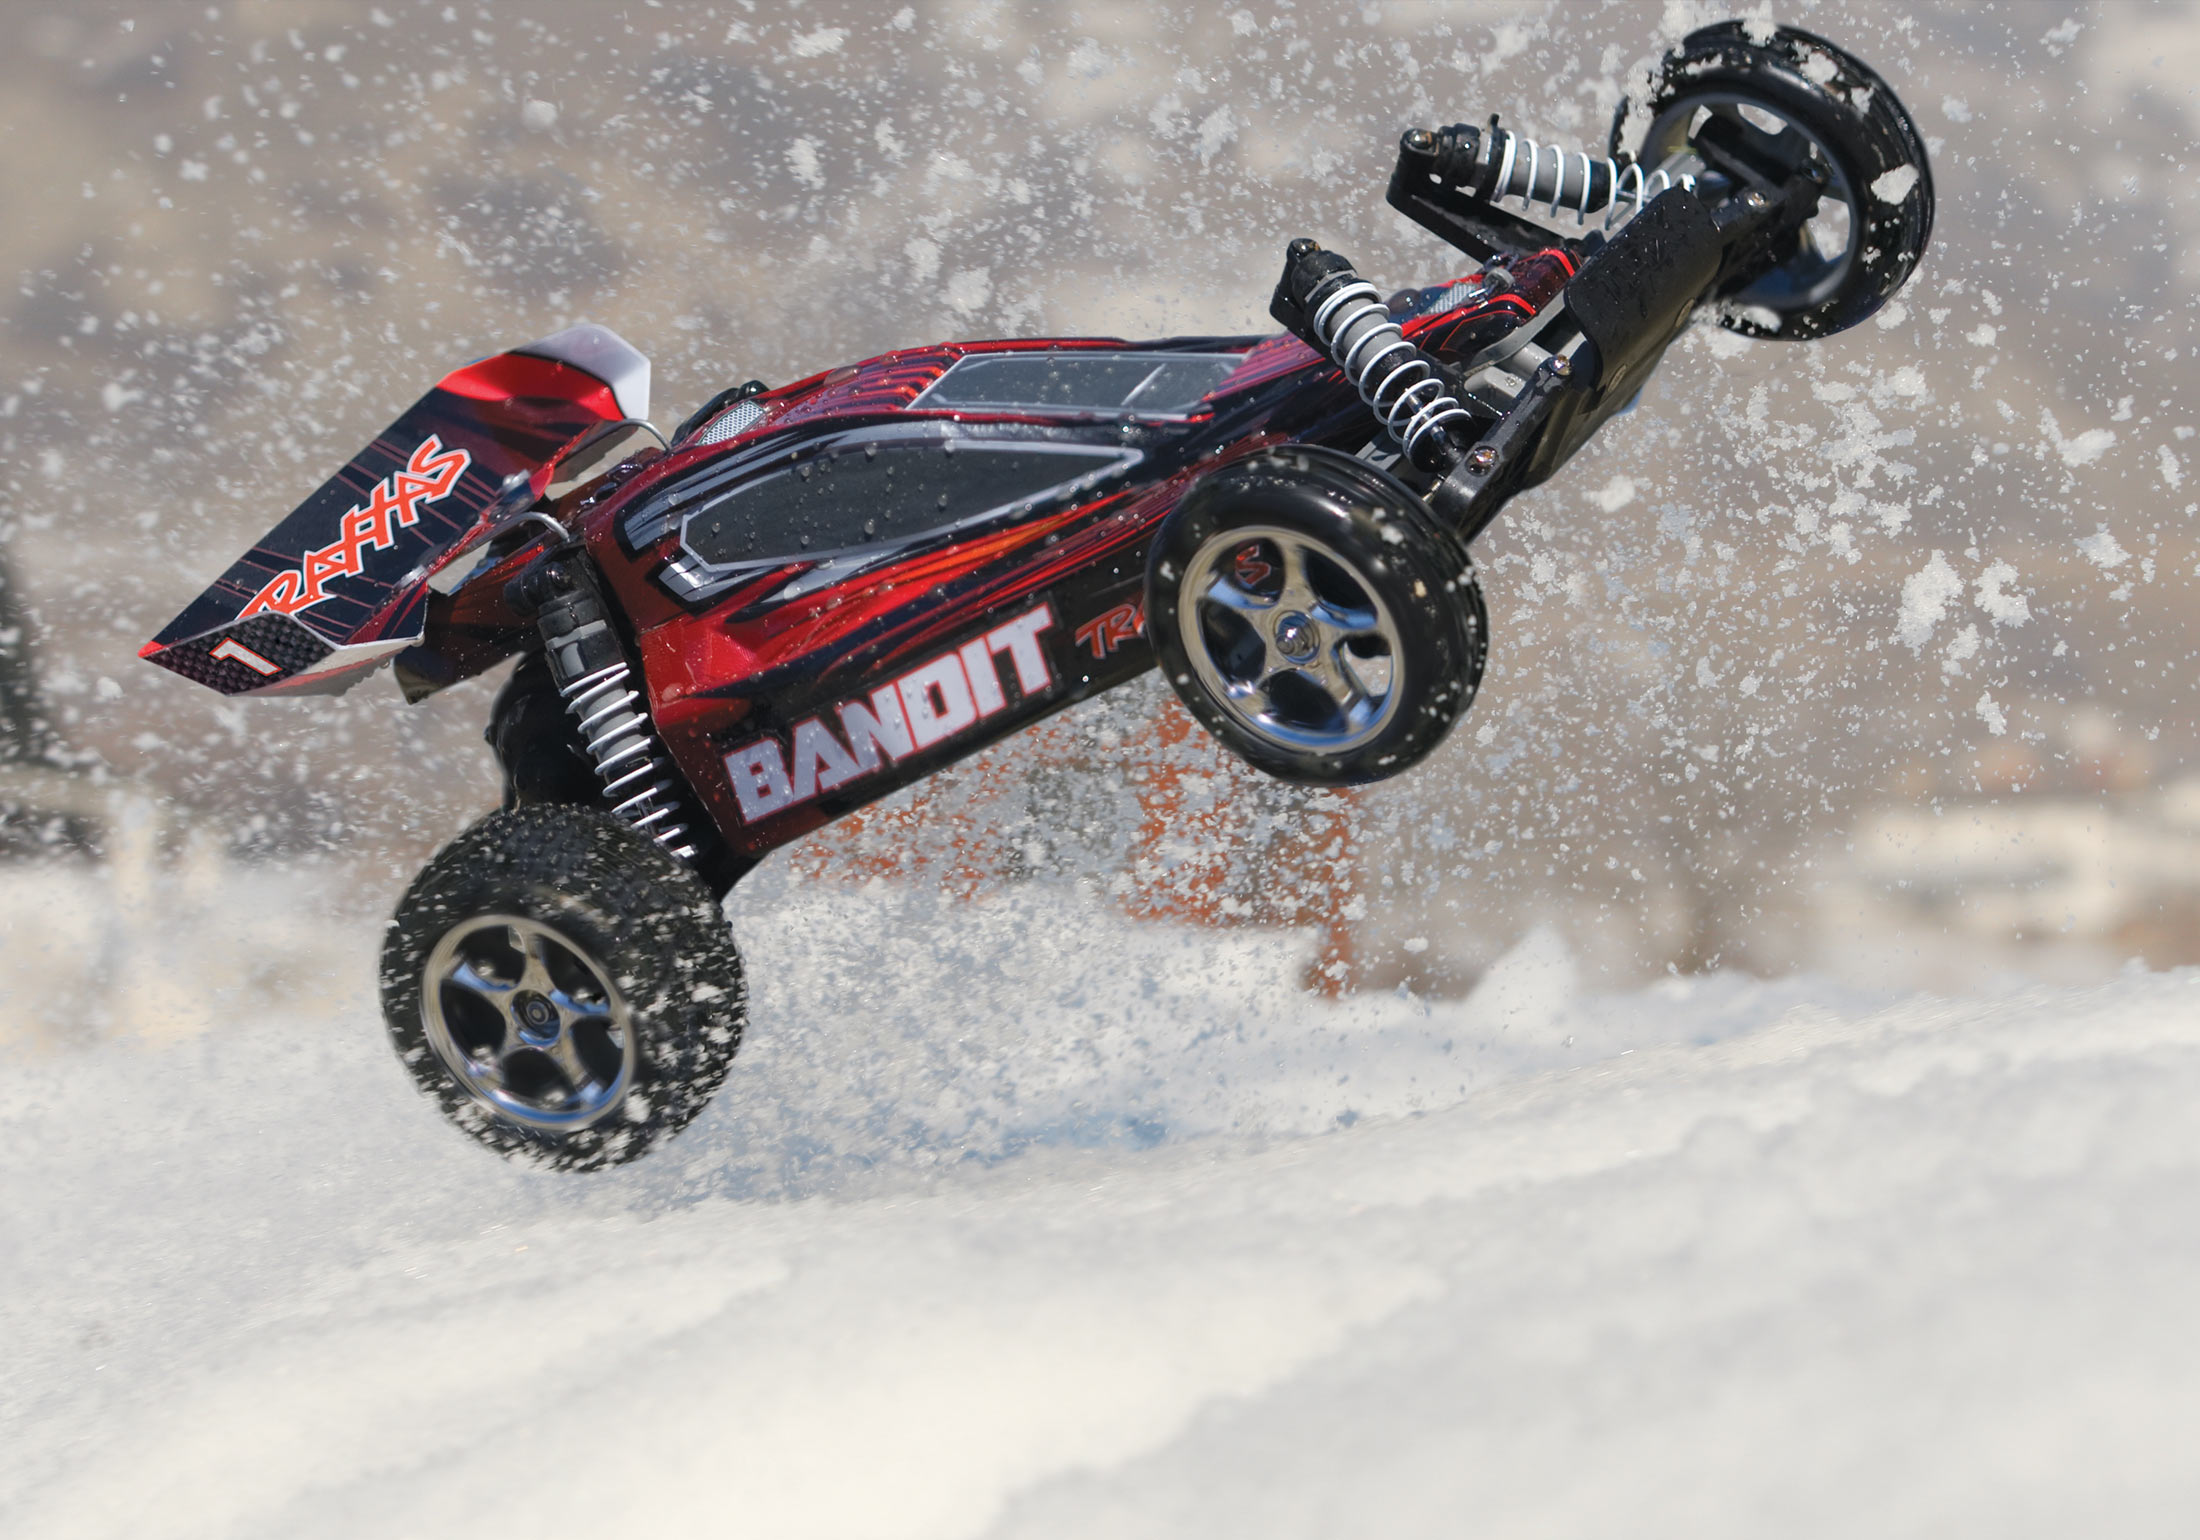 Bandit (24054-1) Action Snow